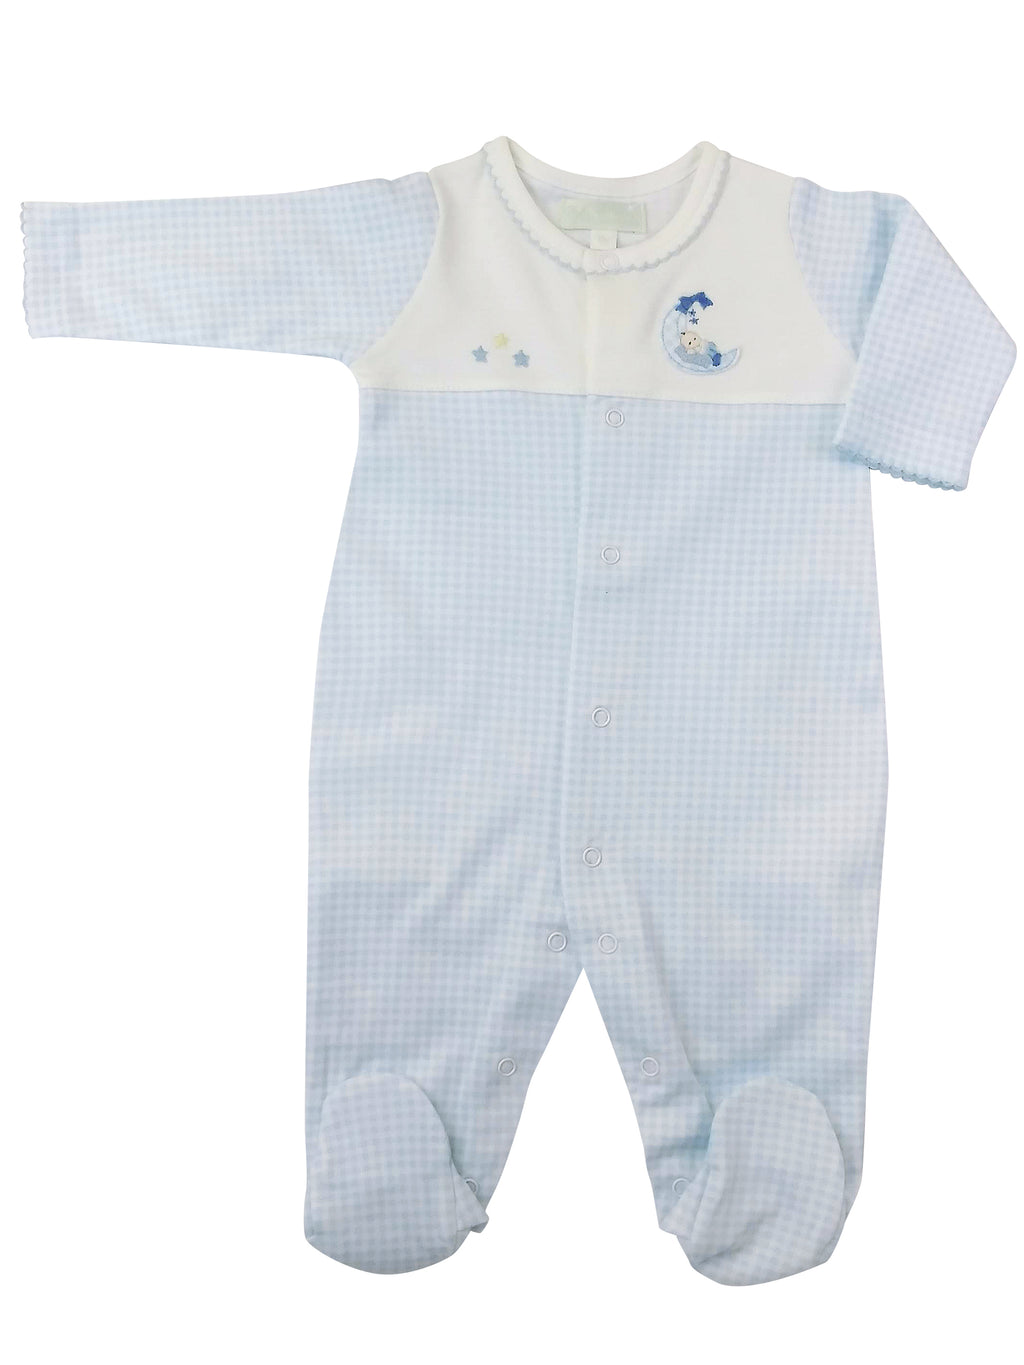 Boy on the Moon Footie - Little Threads Inc. Children's Clothing